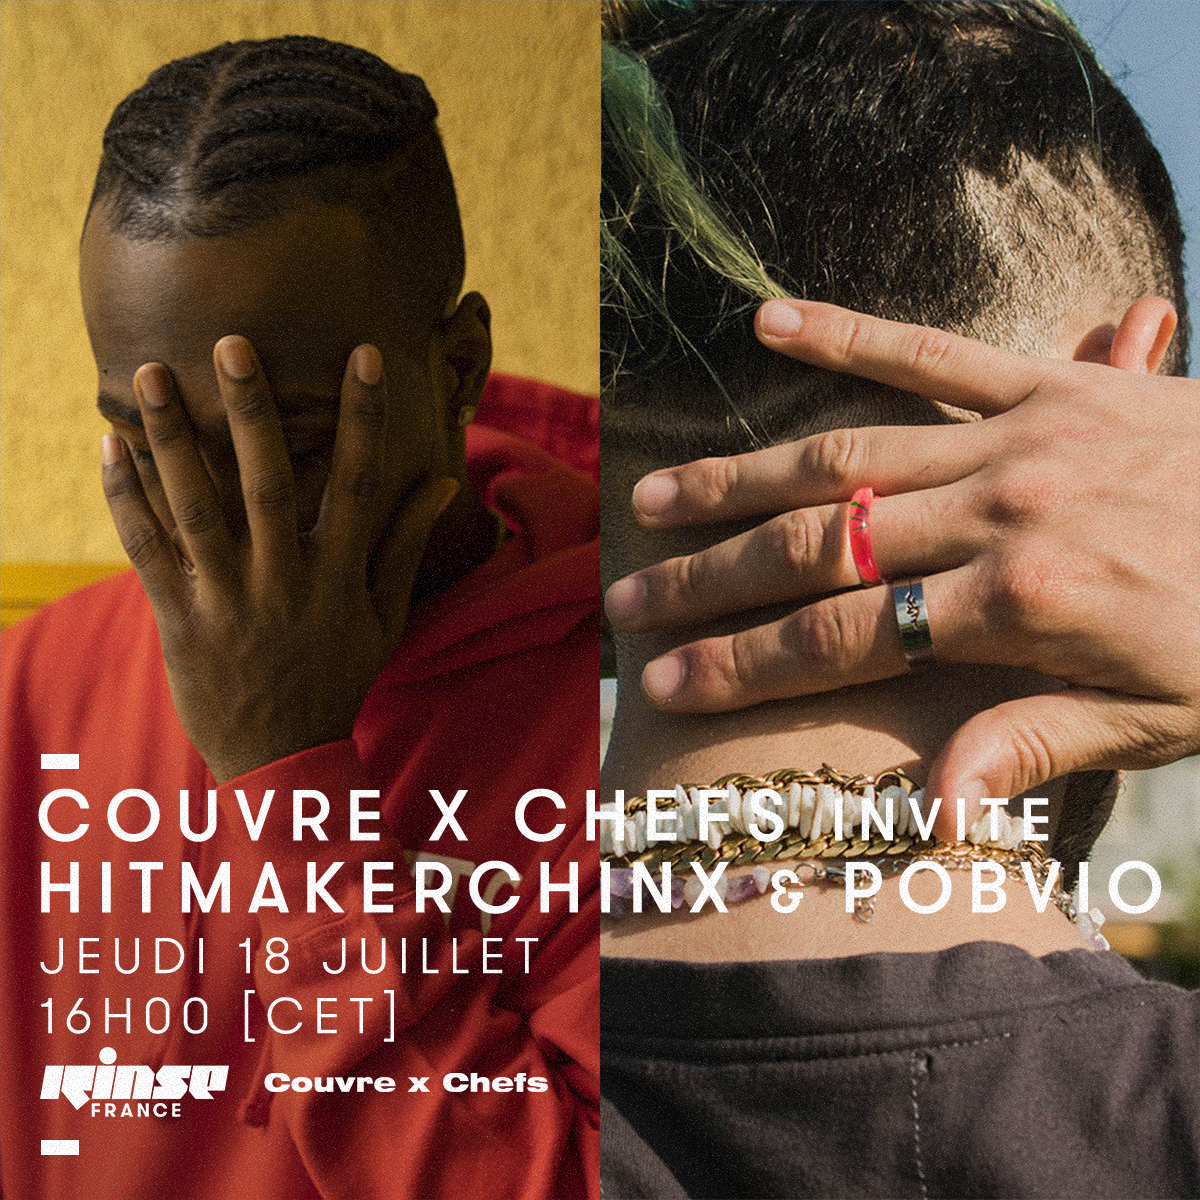 rinse france hitmakerchinx pobvio